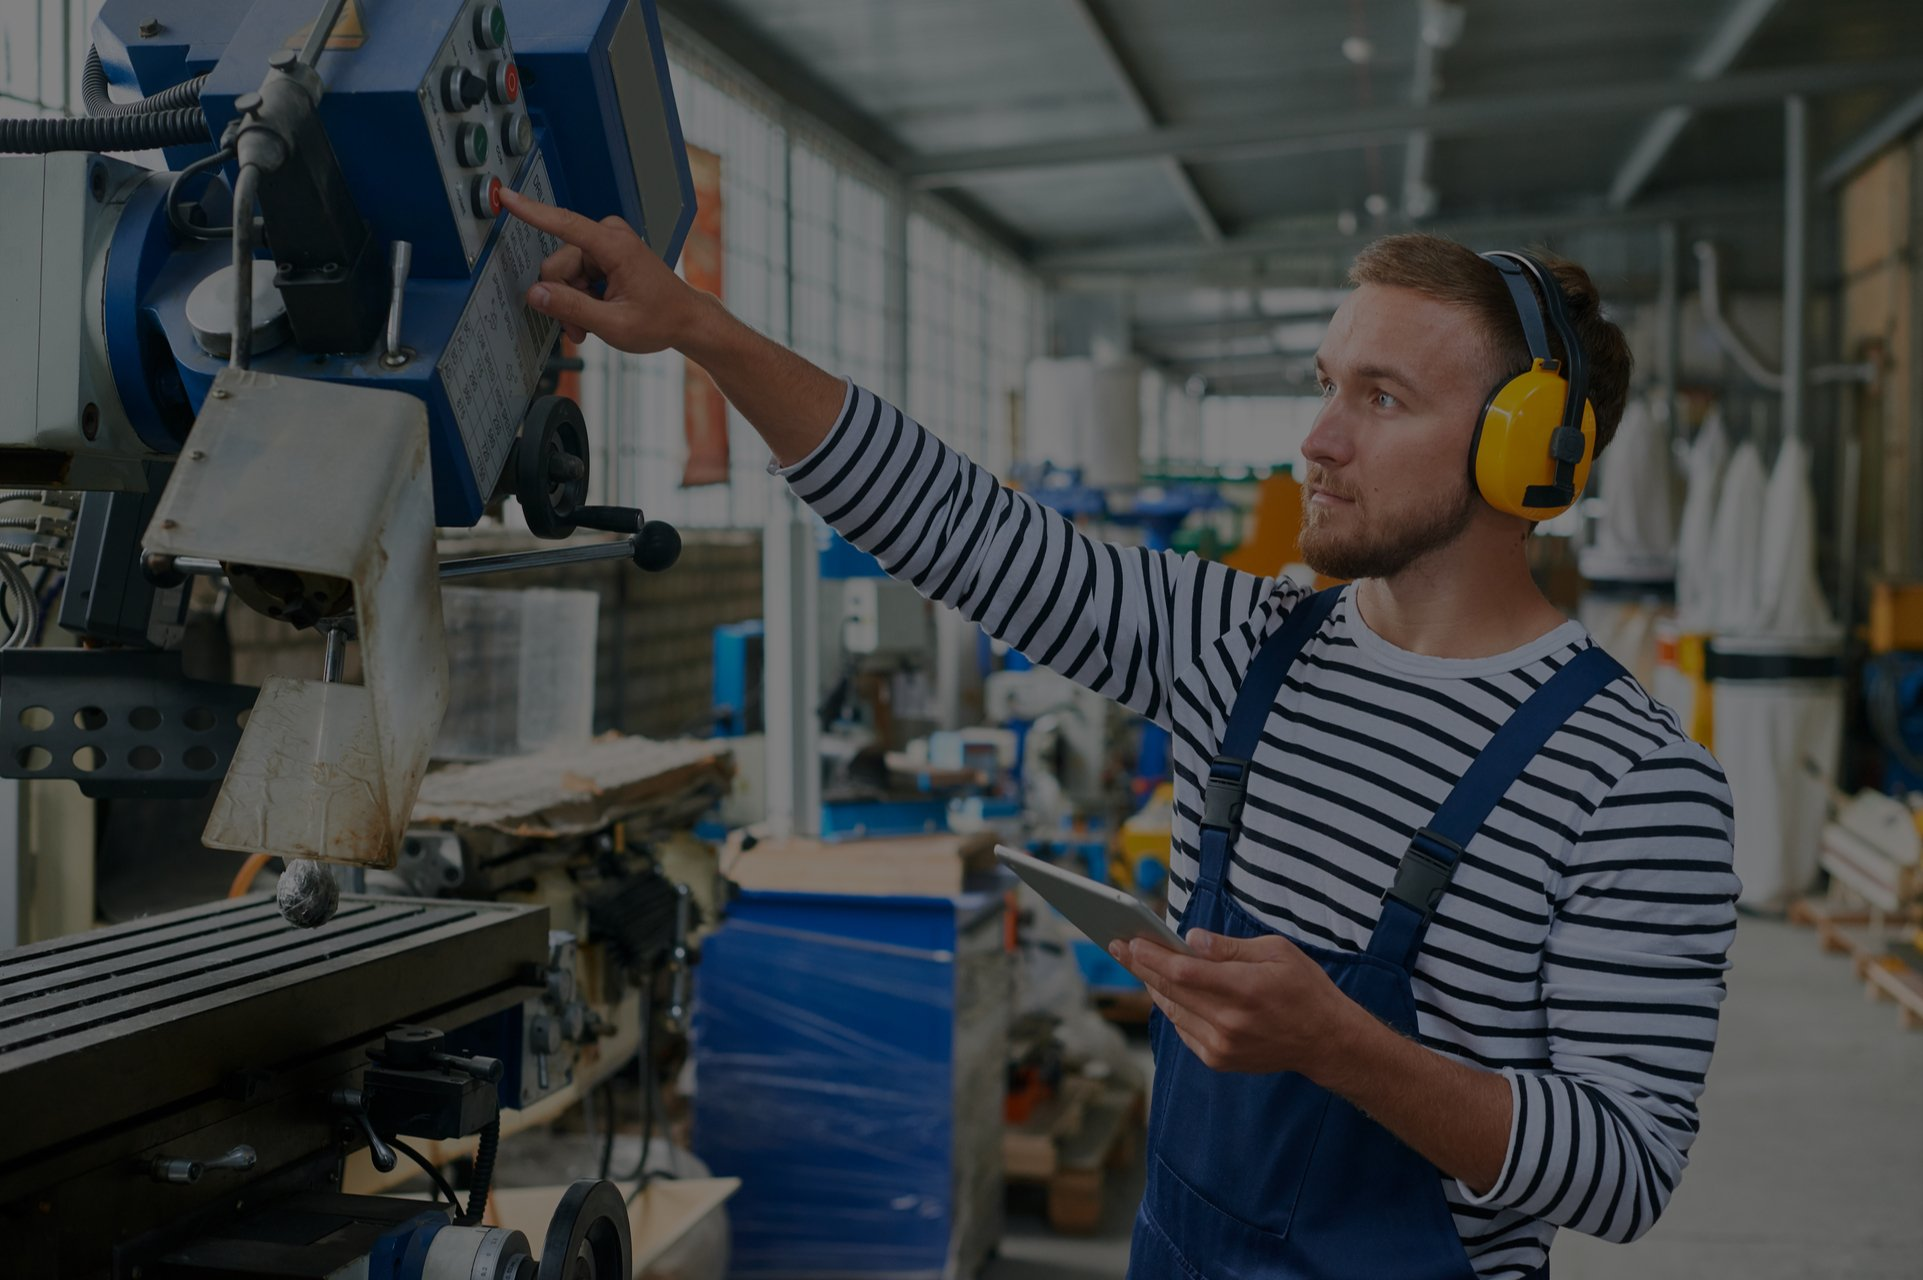 Manufacturing &The Latest H&S Prosecutions